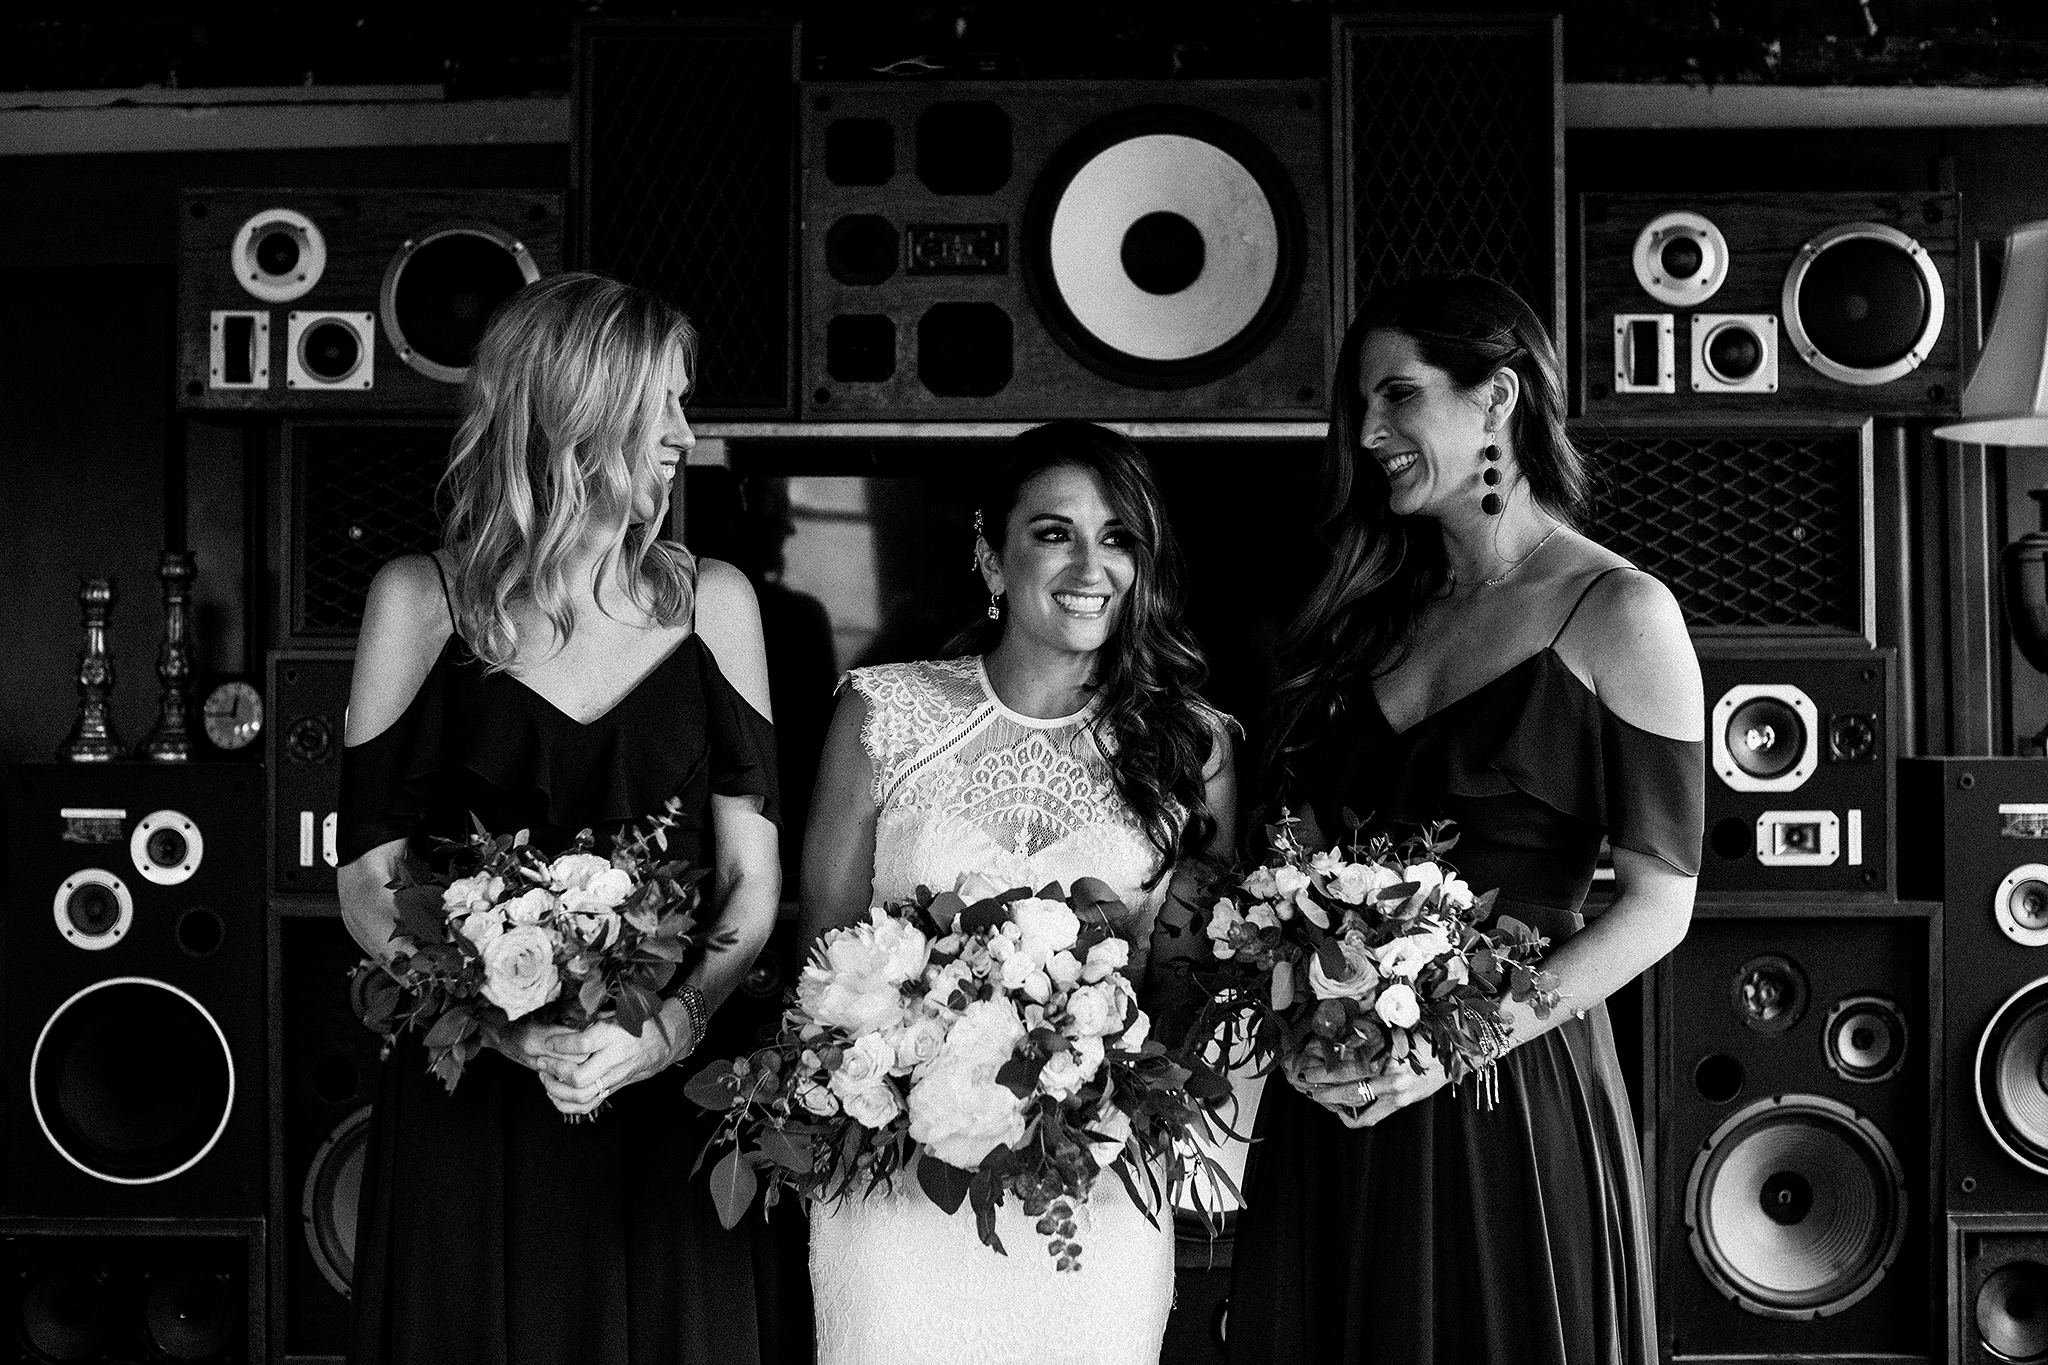 bride/bridesmaids portrait in front of vintage speakers | the ivy house milwaukee wedding photographer | chrissy deming